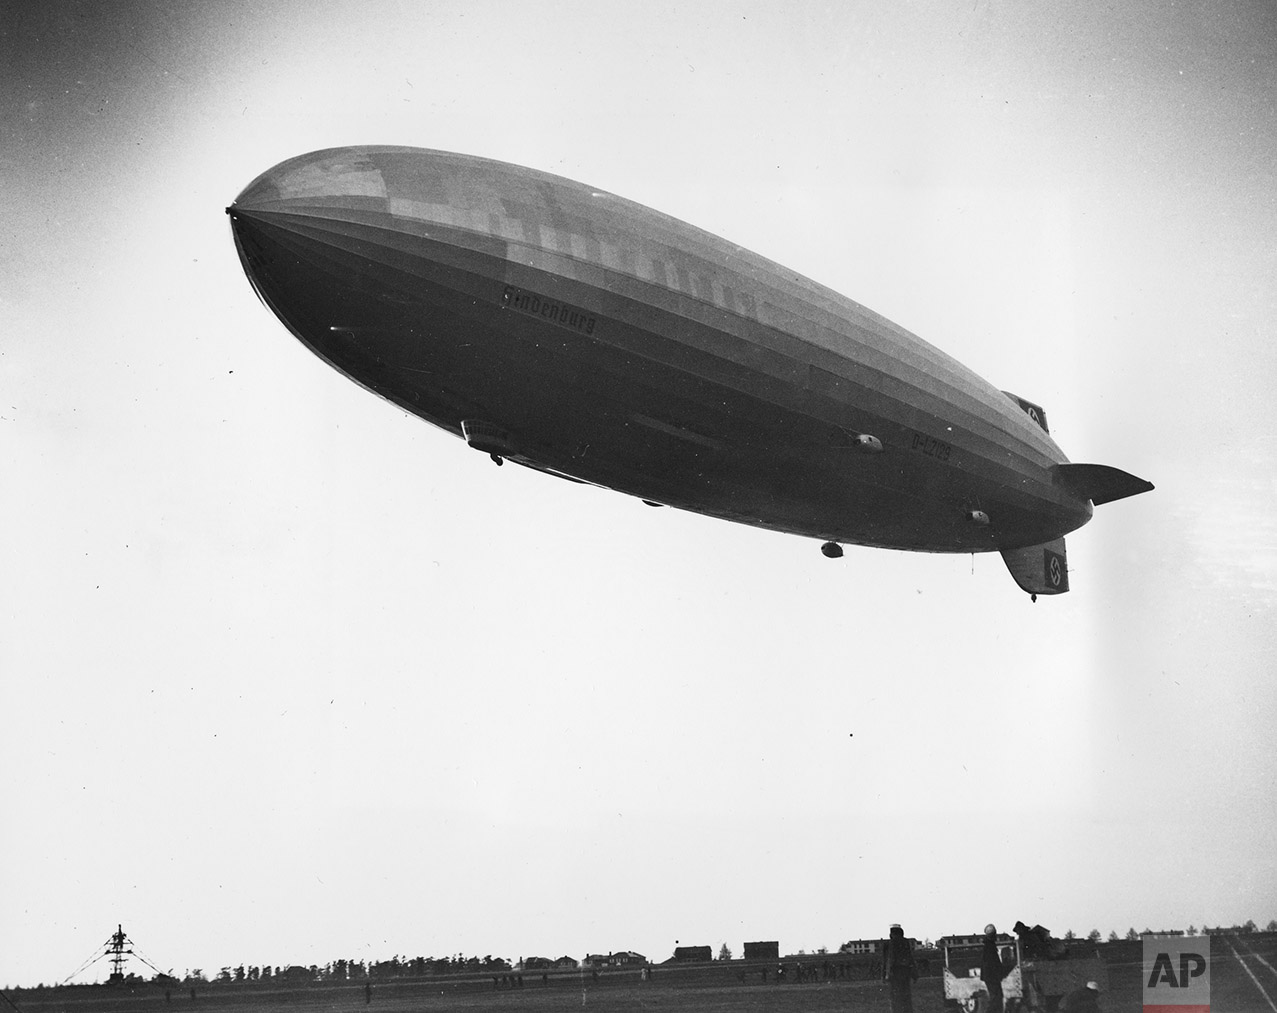 The German dirigible Hindenburg, with the swastika symbol visible on its tail wing, is shown just before it crashed upon landing at the U.S. Naval Station in Lakehurst, N.J., on May 6, 1937.  (AP Photo)